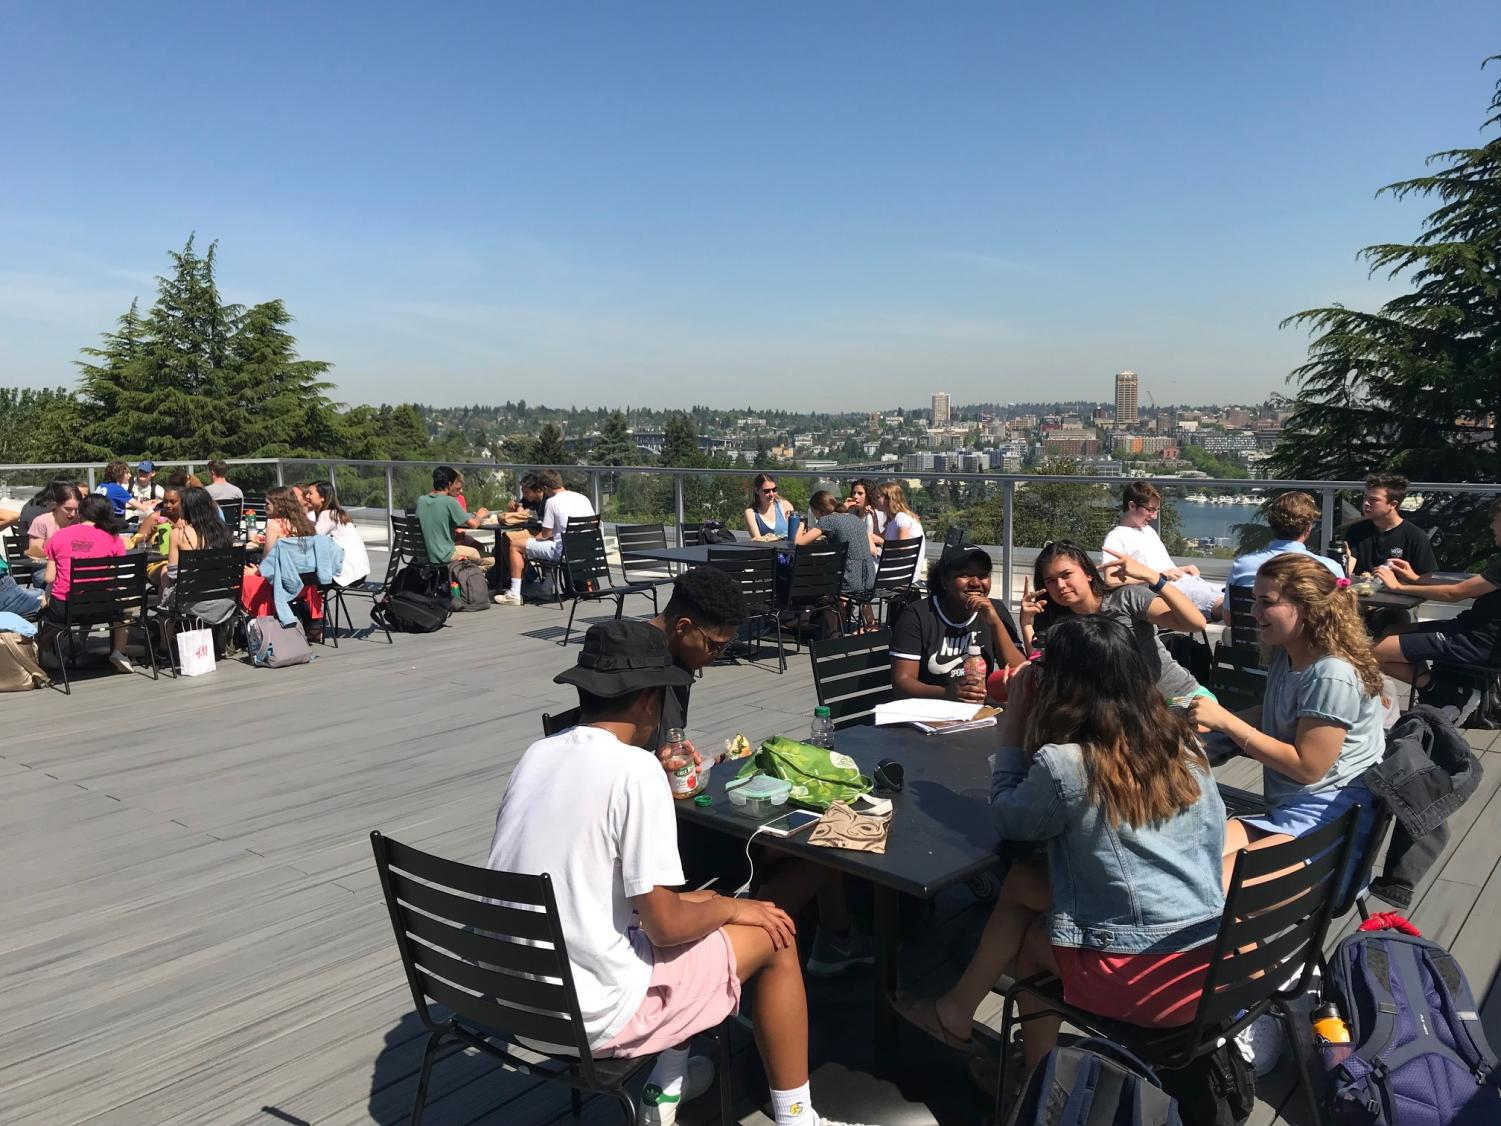 The 1891 Terrace is a popular place for students to eat their lunches. The highly anticipated patio on the top floor of Adelphia Memorial Hall opened in May for upperclassmen and faculty.